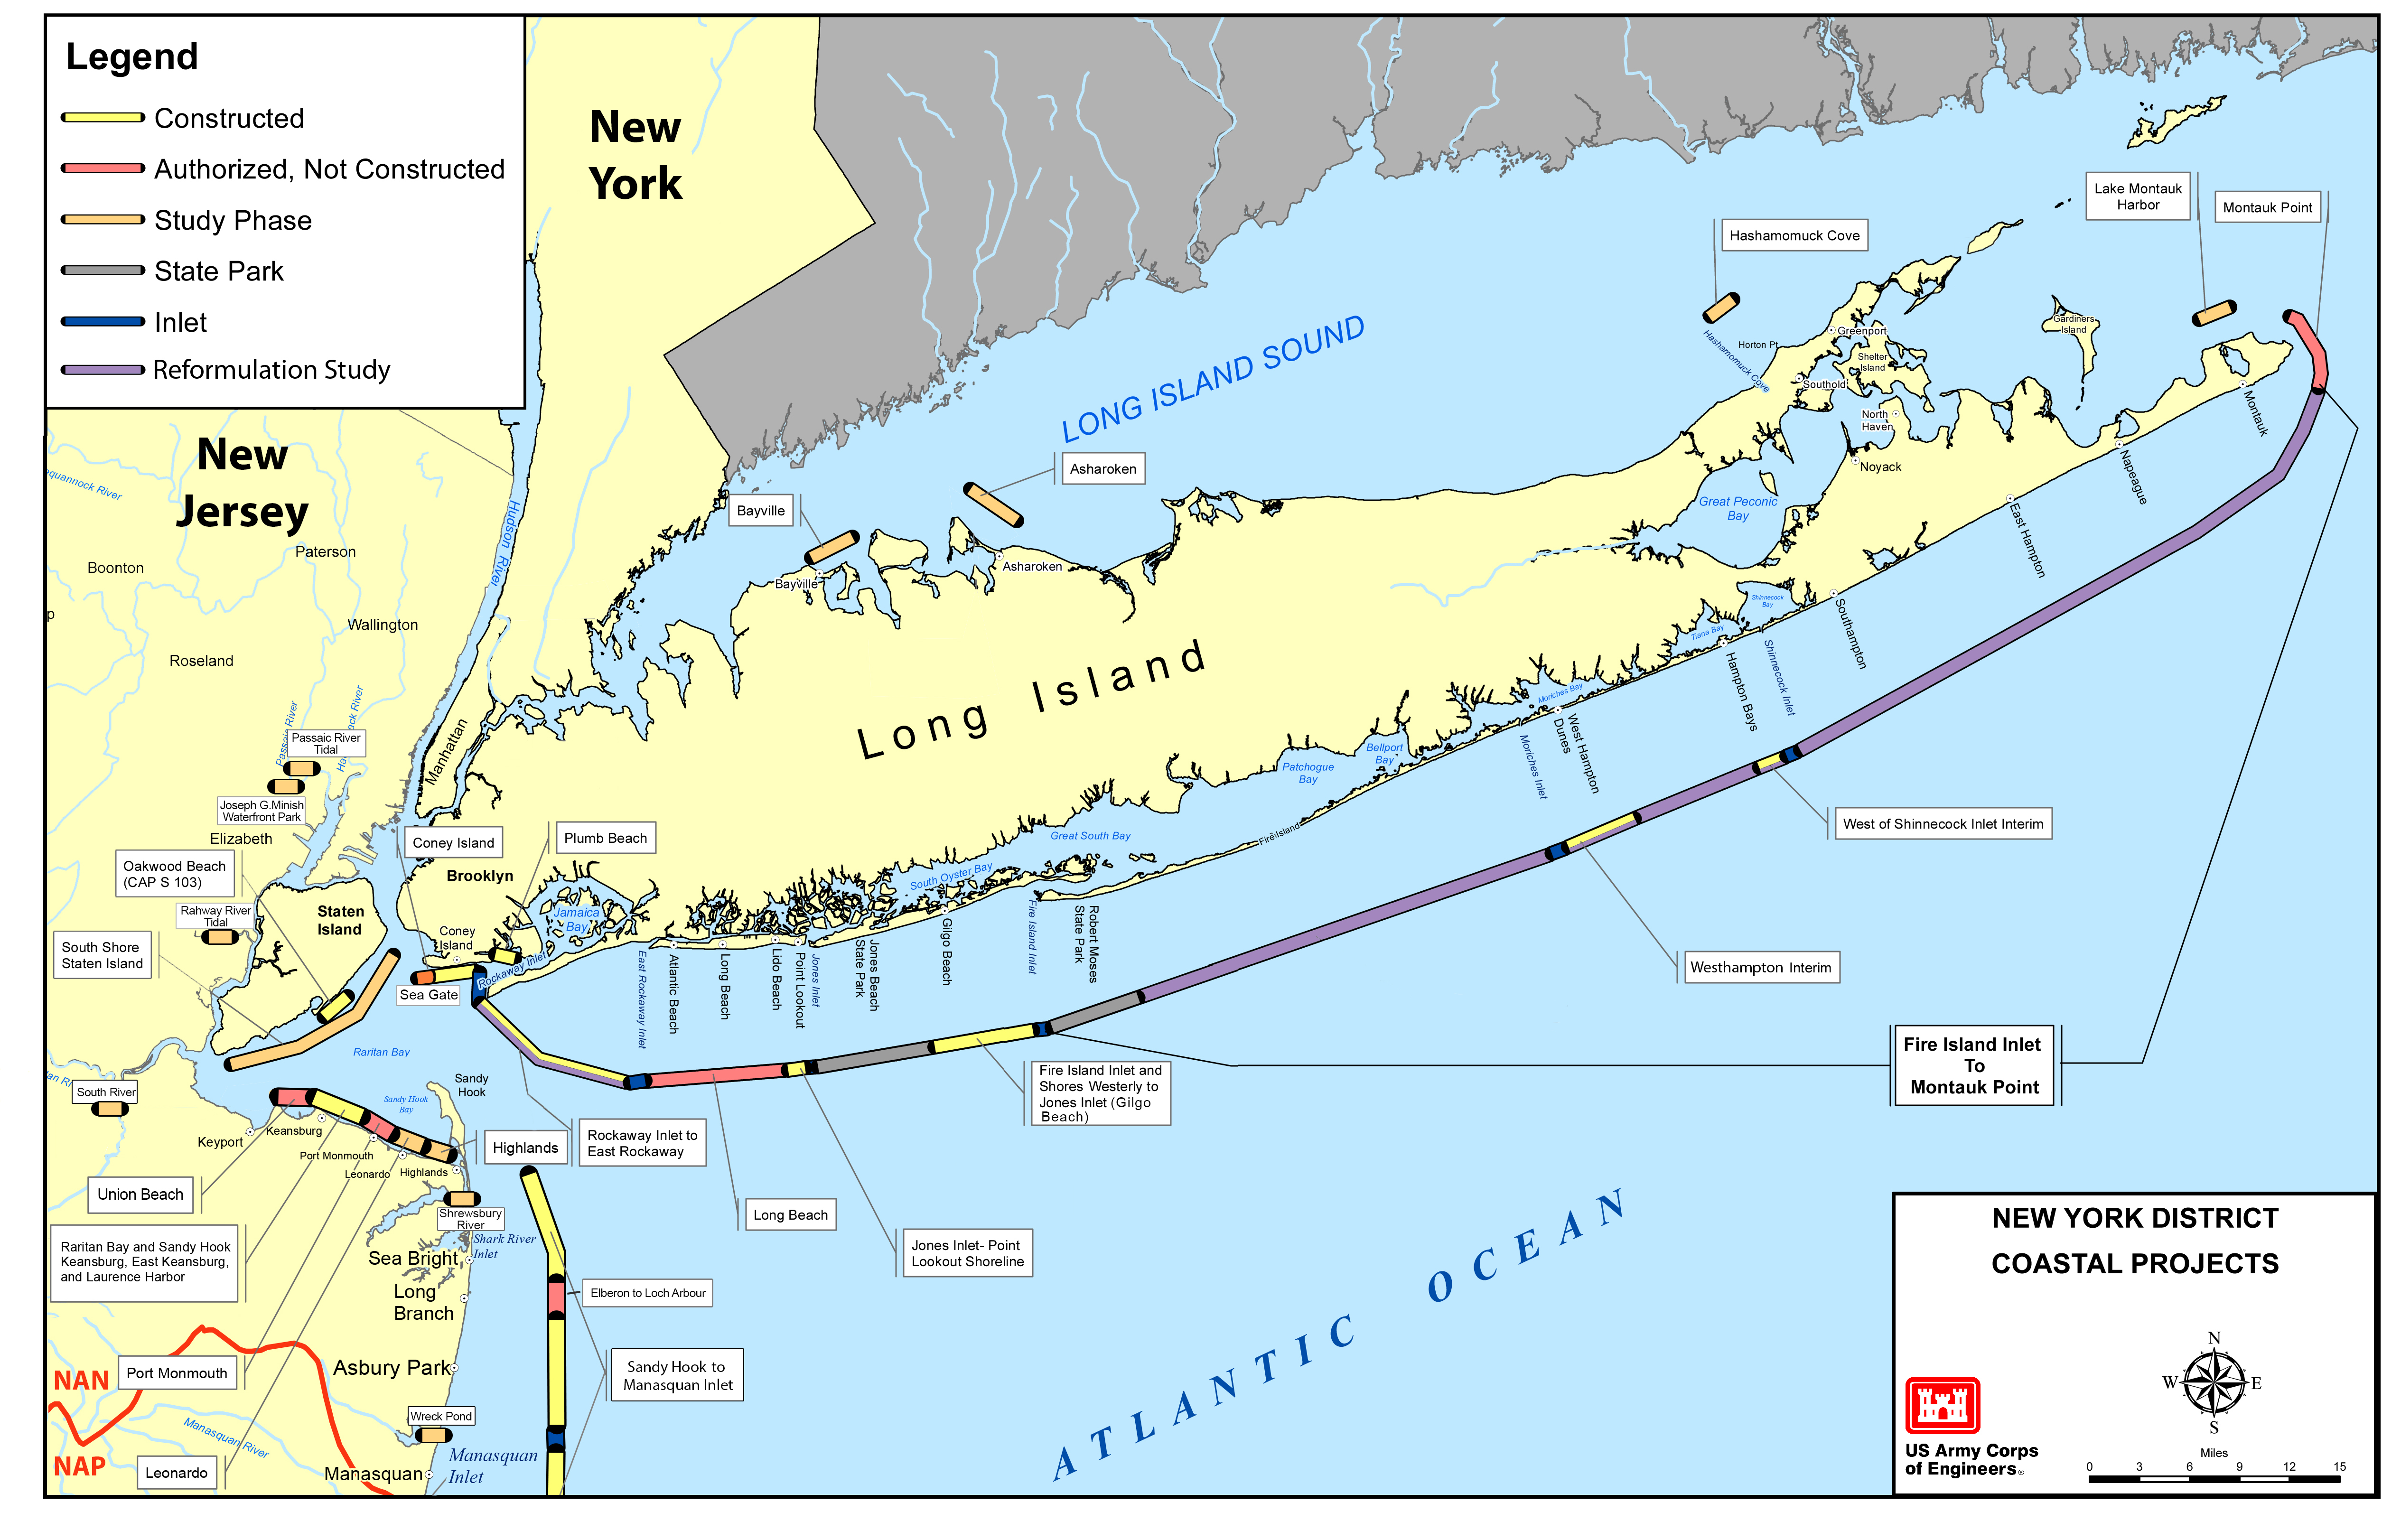 CoastalNANProjectsmapNYandNJjpg - Map of new york and new jersey